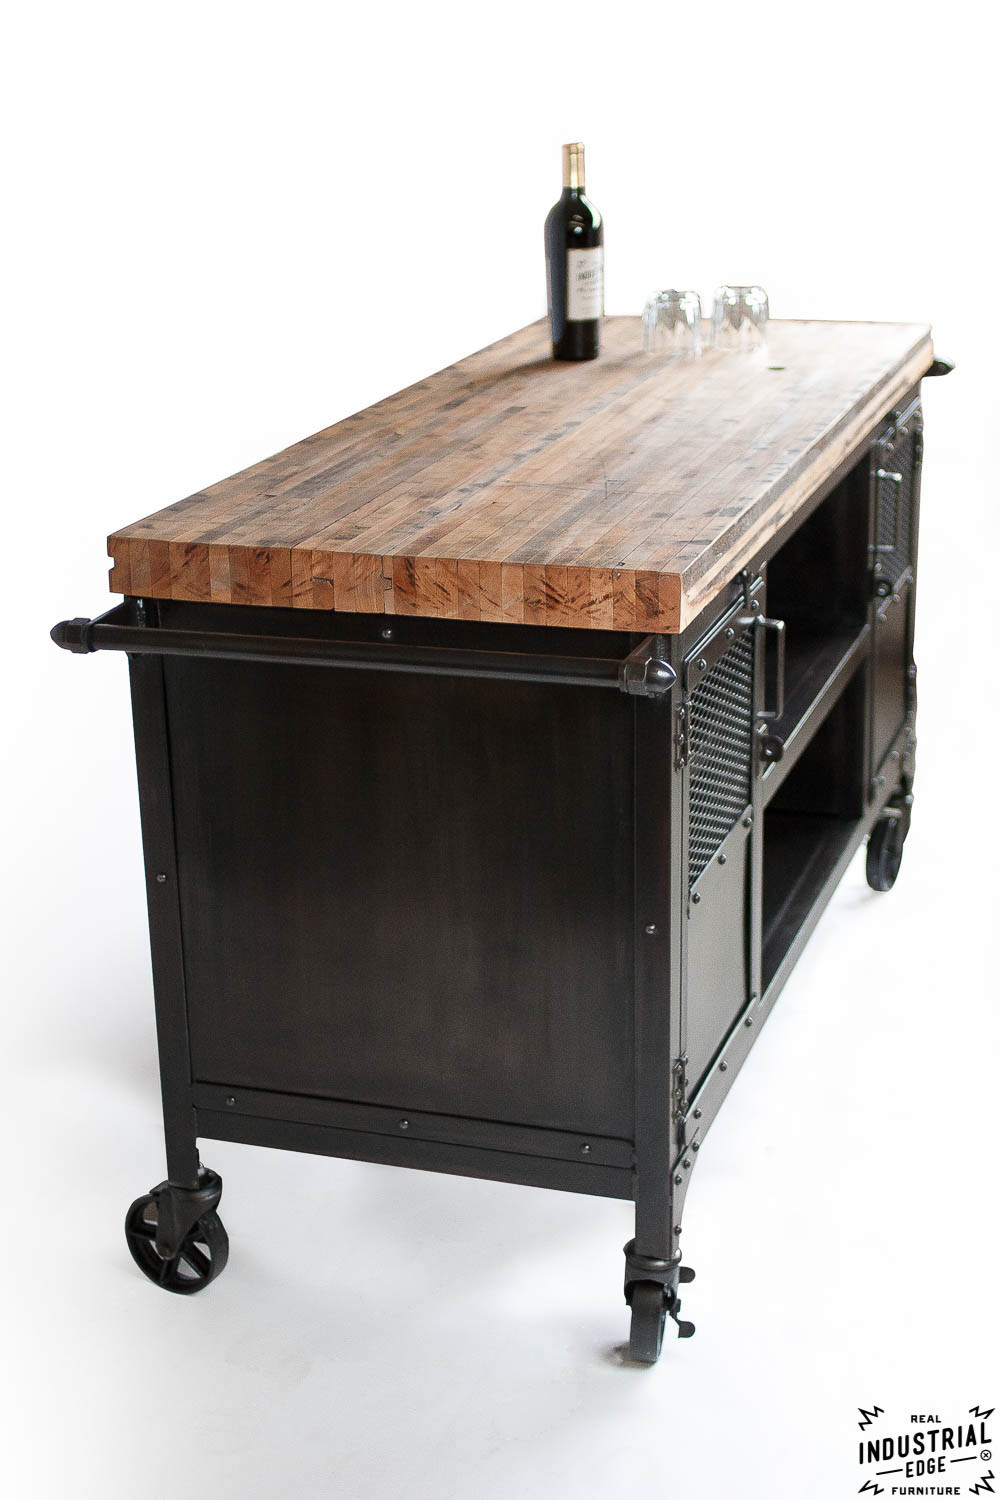 Industrial mini bar reclaimed train car floor top real industrial edge fu - Mini bar table design ...